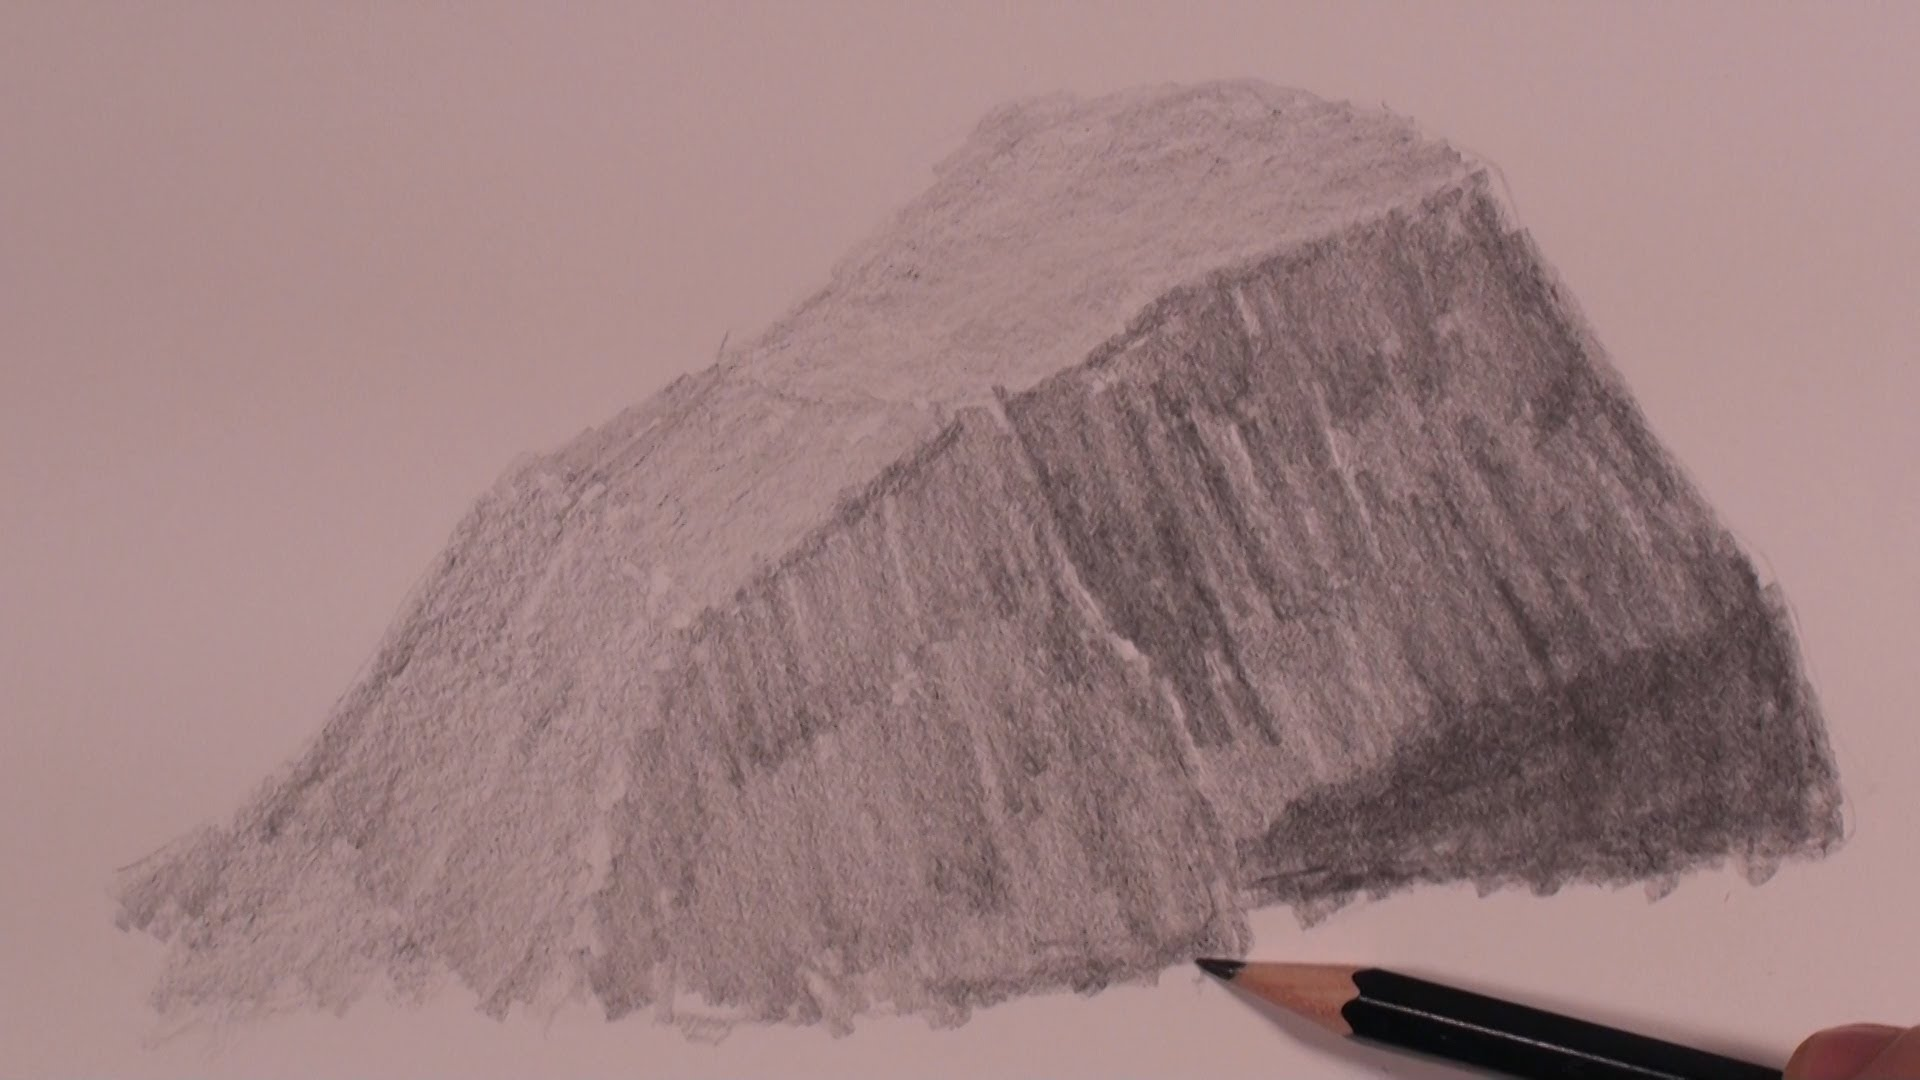 Drawn rock realistic Drawing of The YouTube